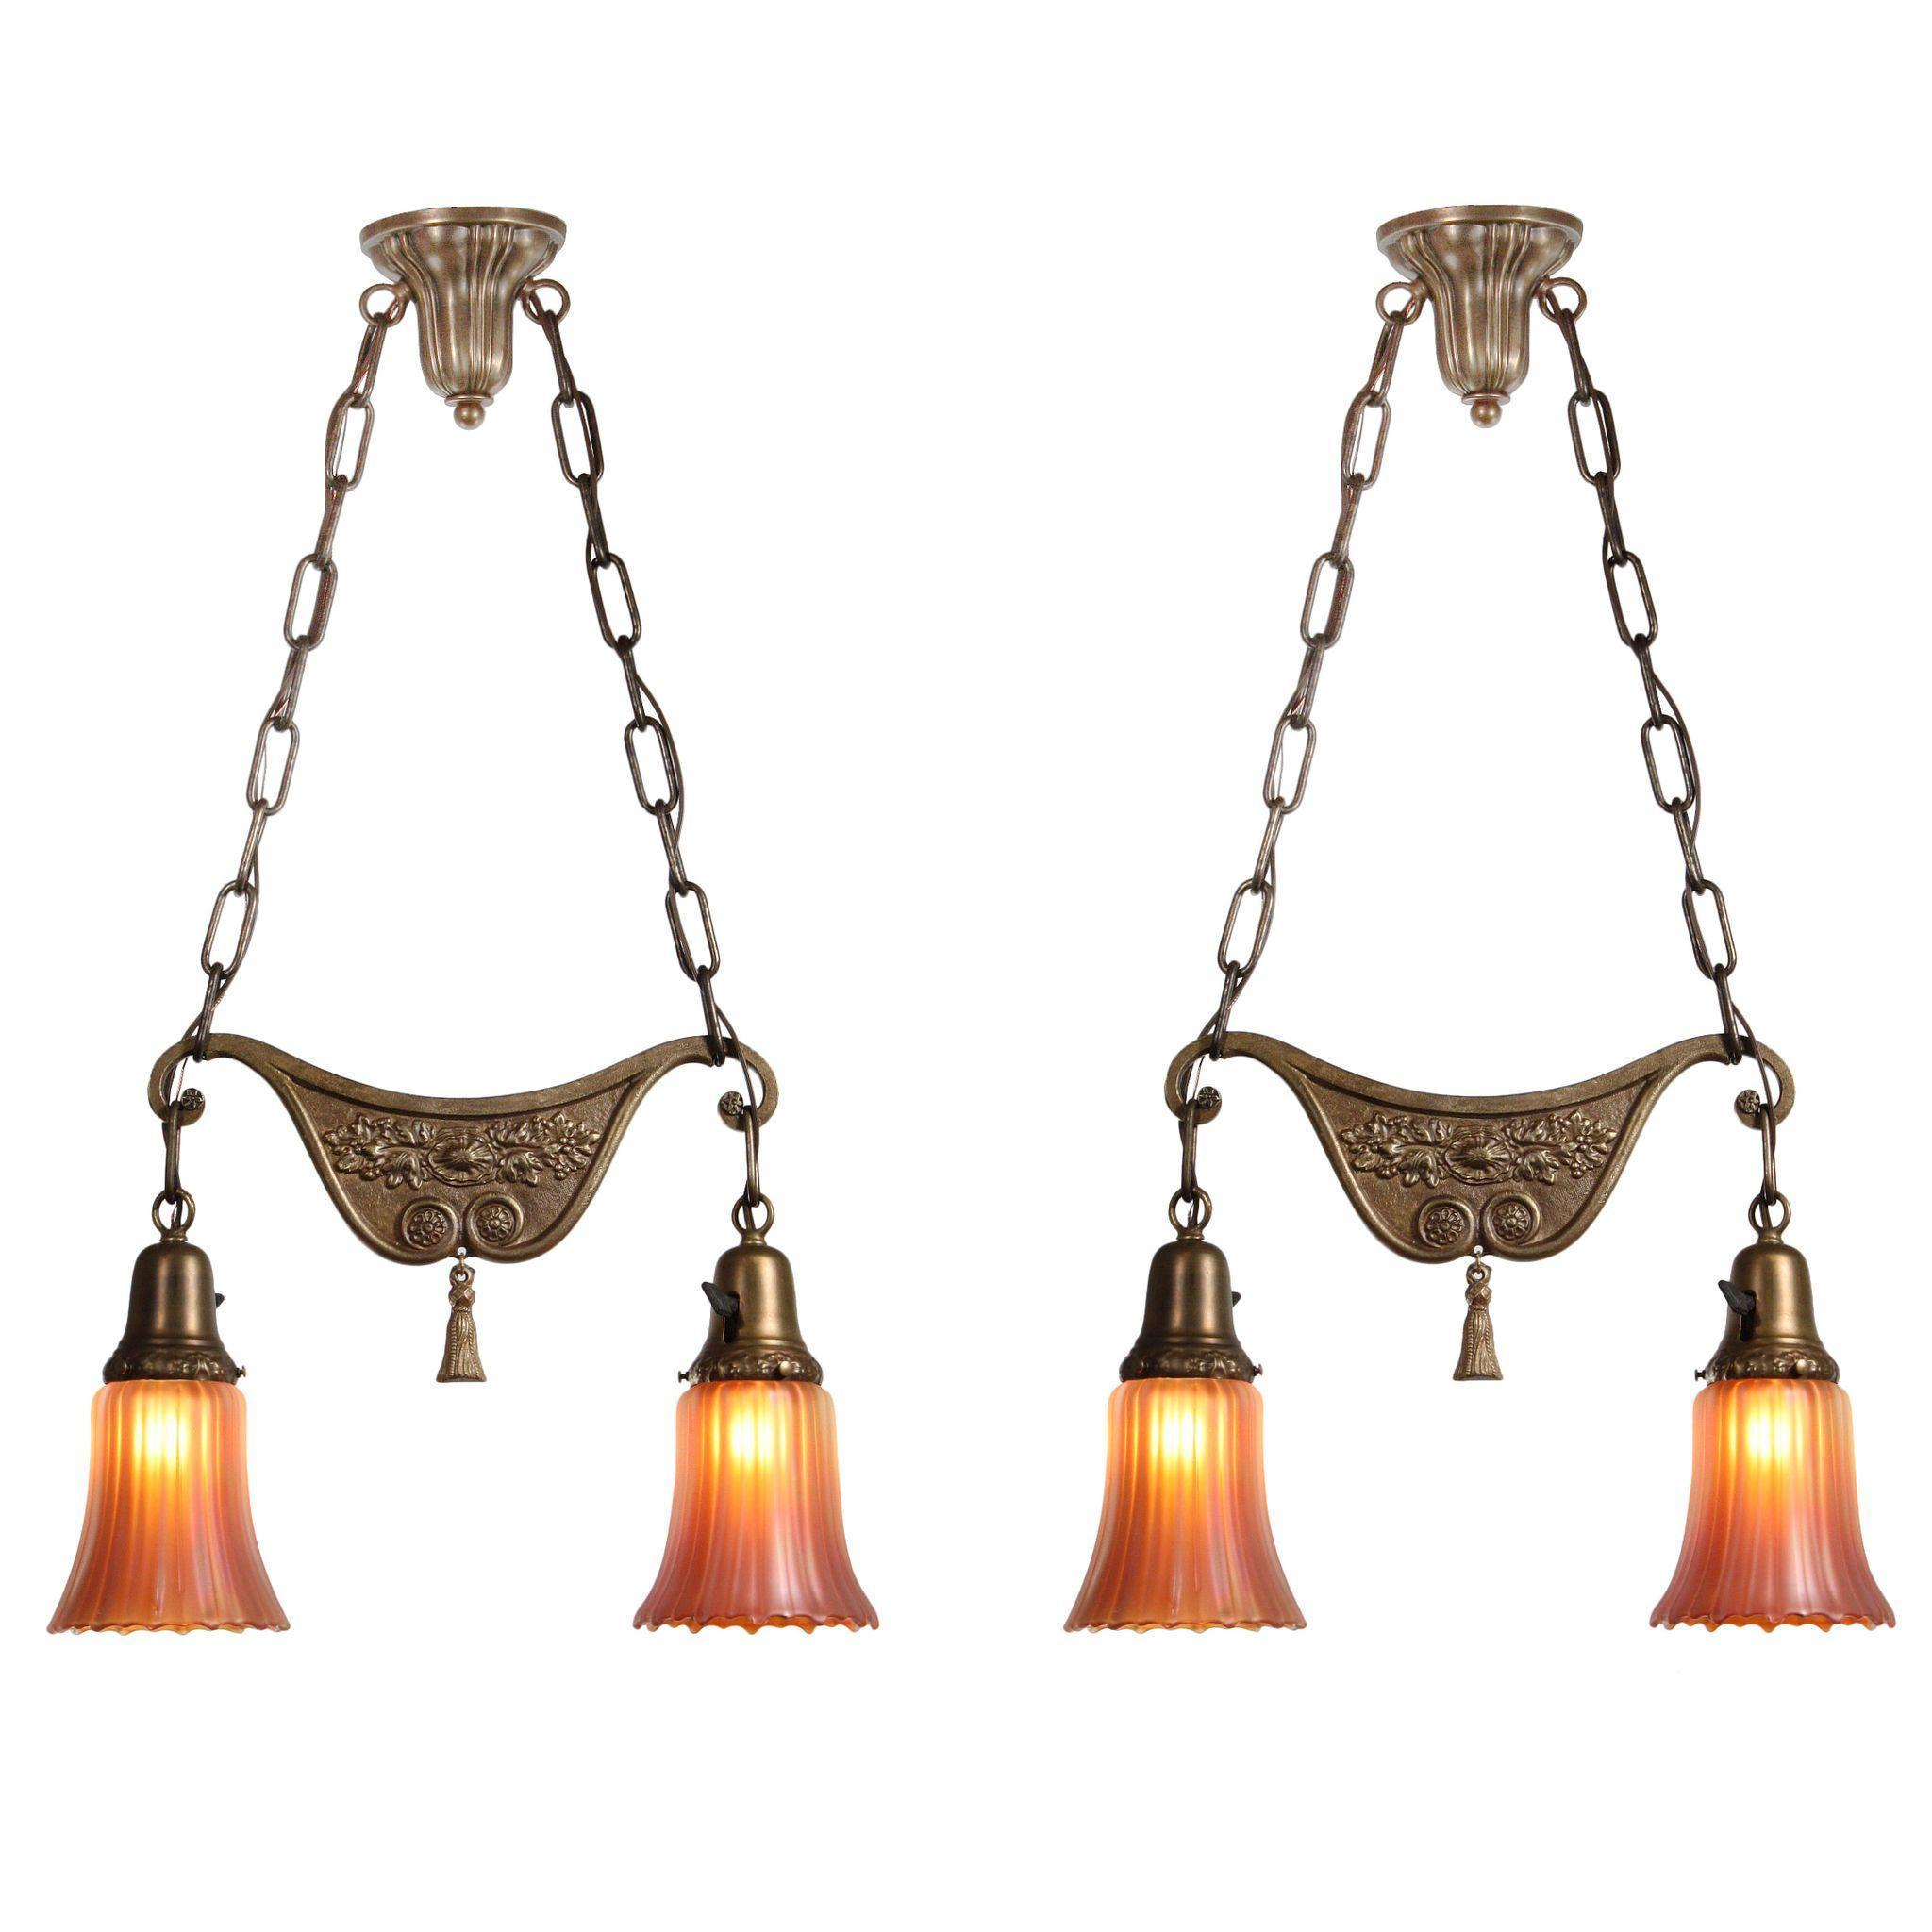 Fabulous Antique Neoclassical Chandeliers with Carnival Shades